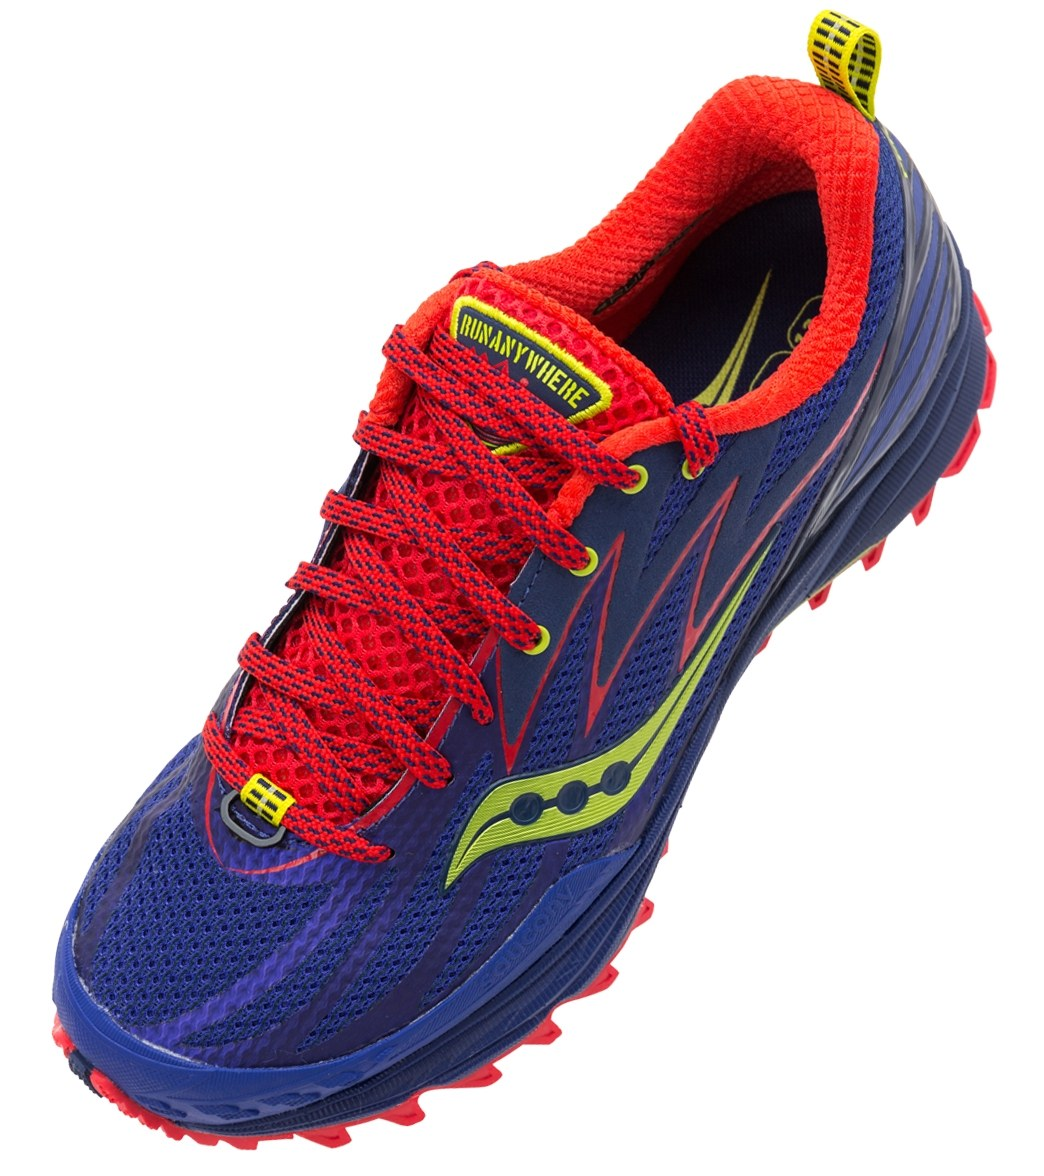 4f857223af7d Saucony Women s Peregrine 5 Trail Running Shoes at SwimOutlet.com - Free  Shipping